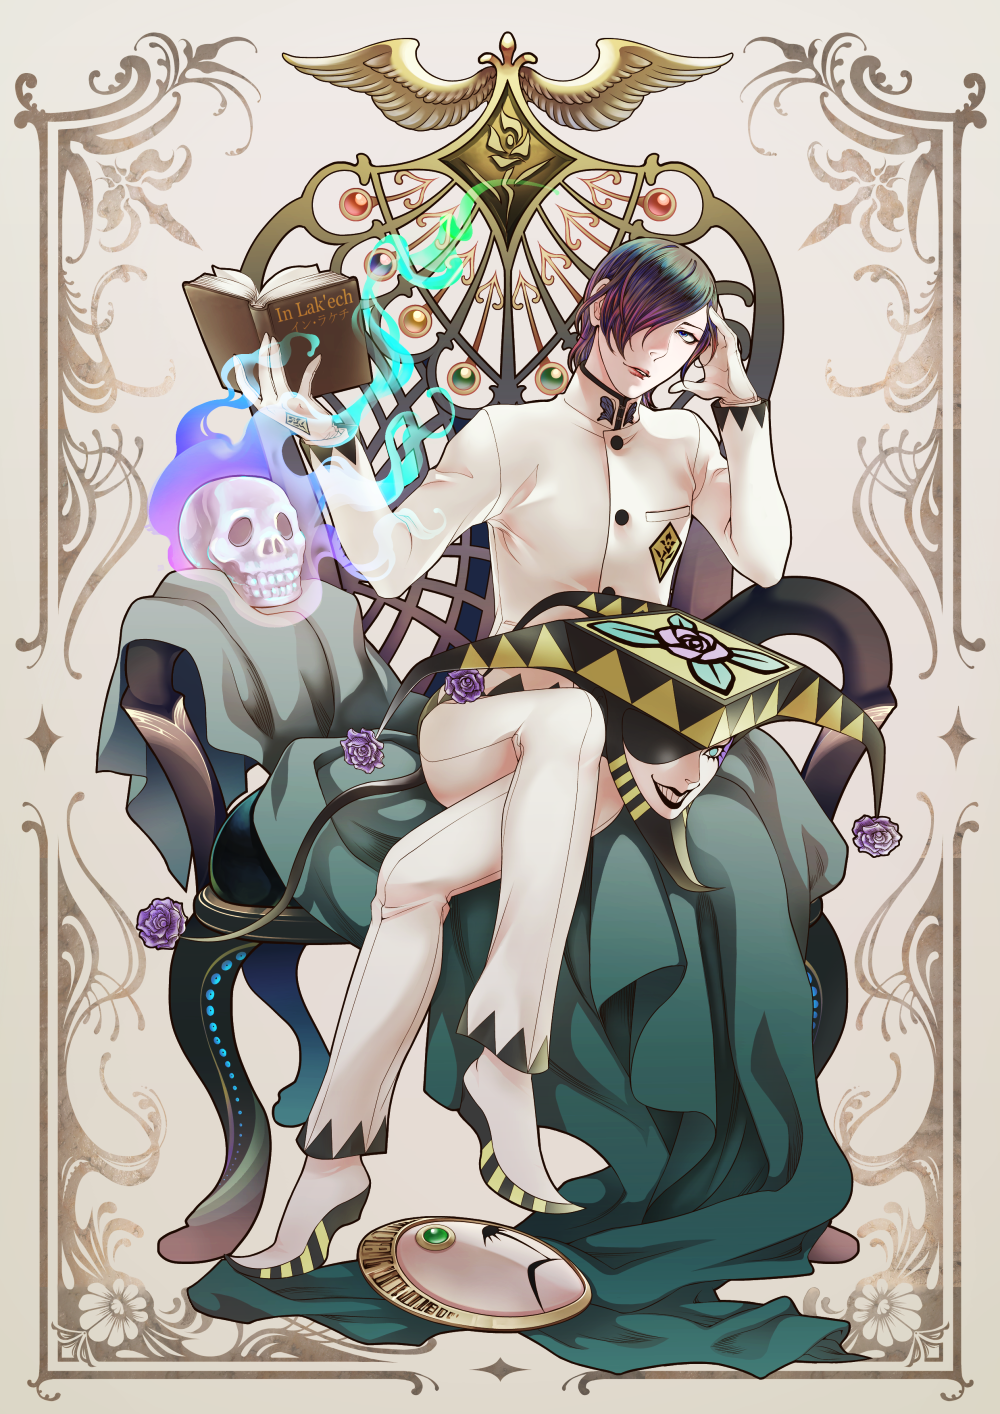 1boy black_hair blue_eyes book cape crossed_legs flower gloves hair_over_one_eye hat highres joker_(persona_2) kurosu_jun looking_at_viewer male_focus mask mask_removed persona persona_2 purple_rose rose short_hair sitting skull solo spoilers throne tomio